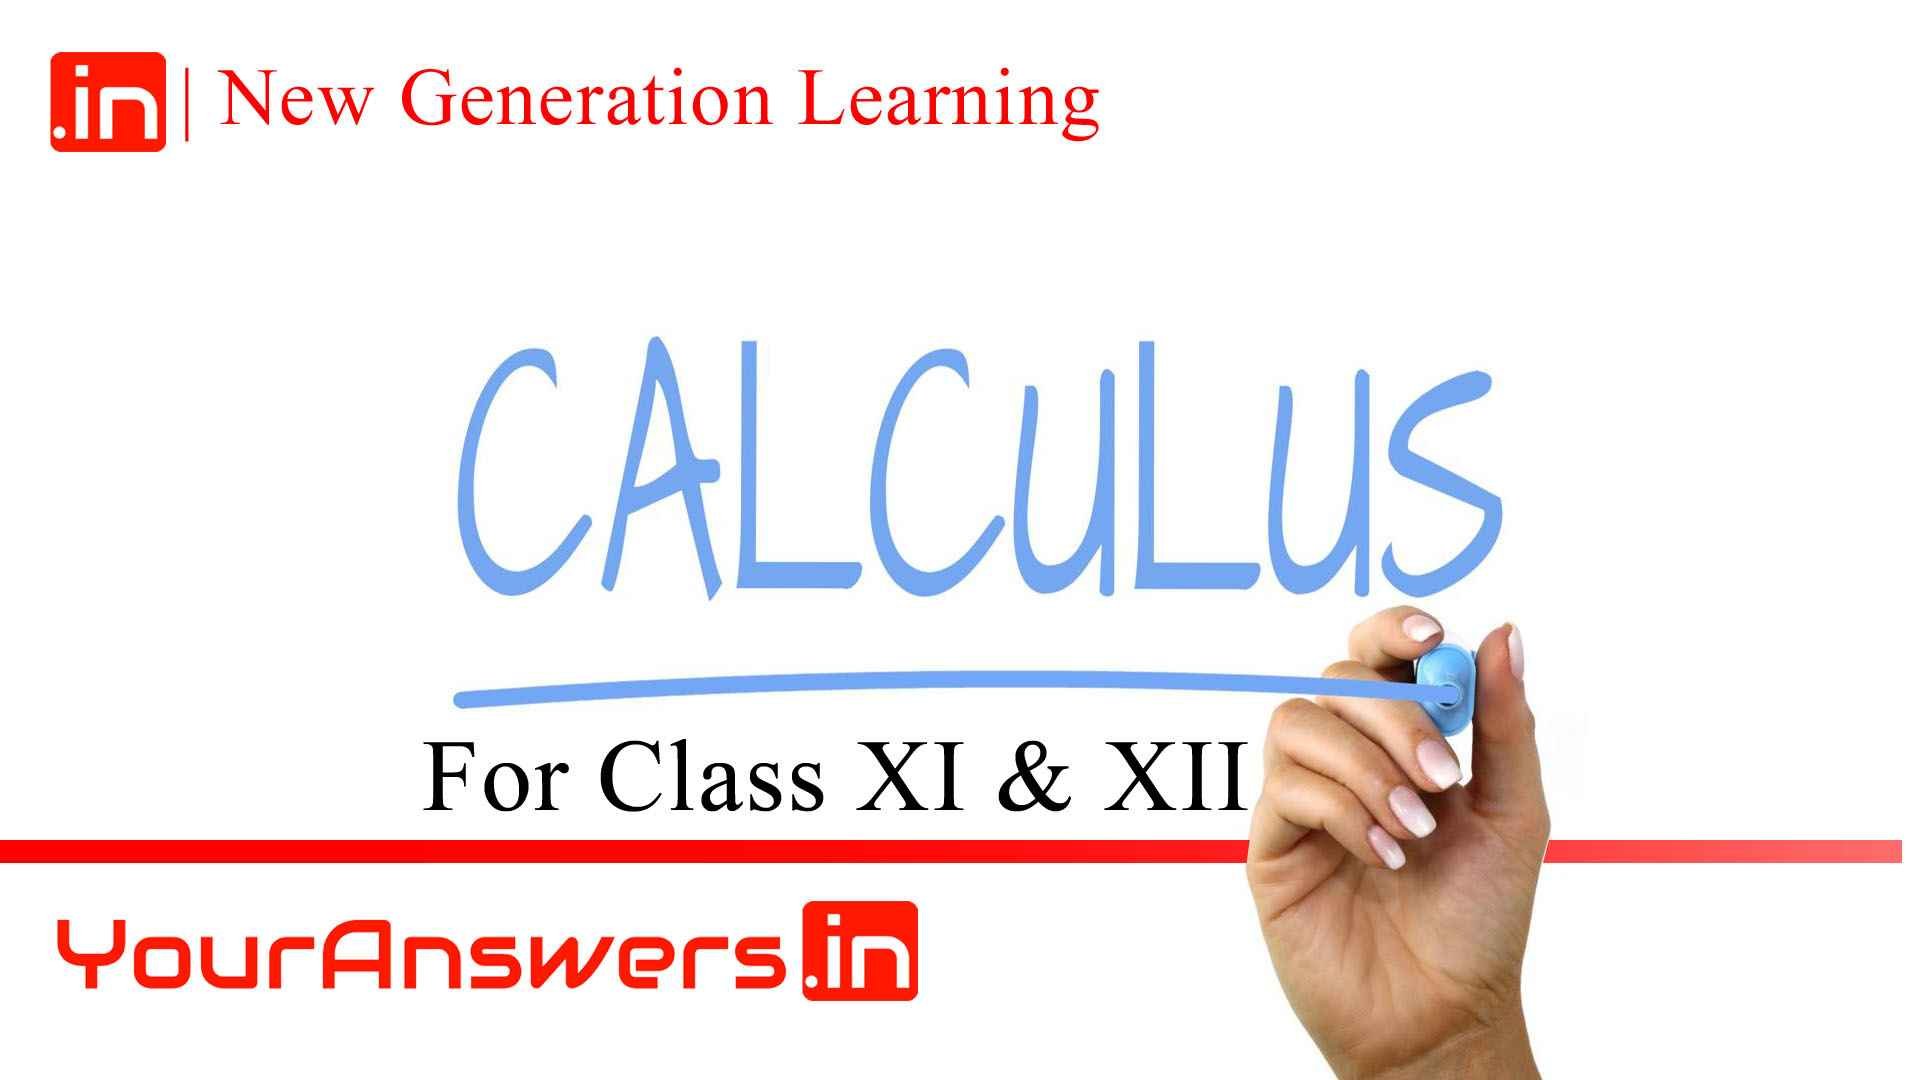 Learning Calculus